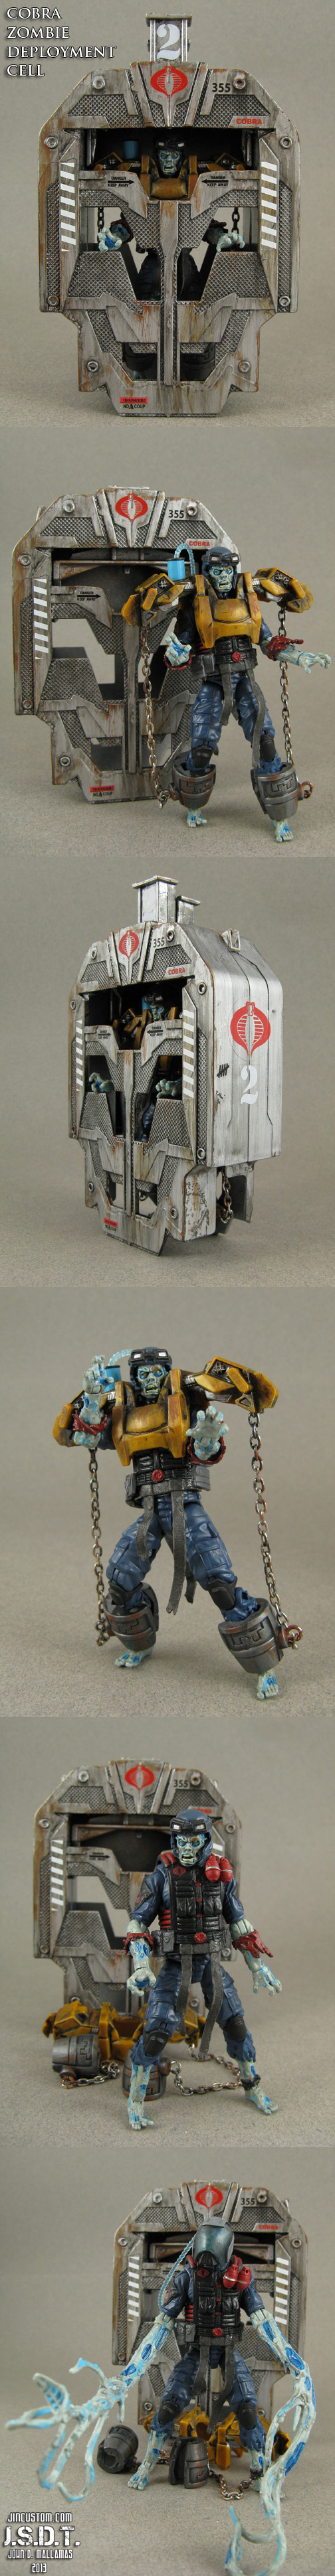 Custom Cobra Zombie Viper Deployment Cell by Jin-Saotome